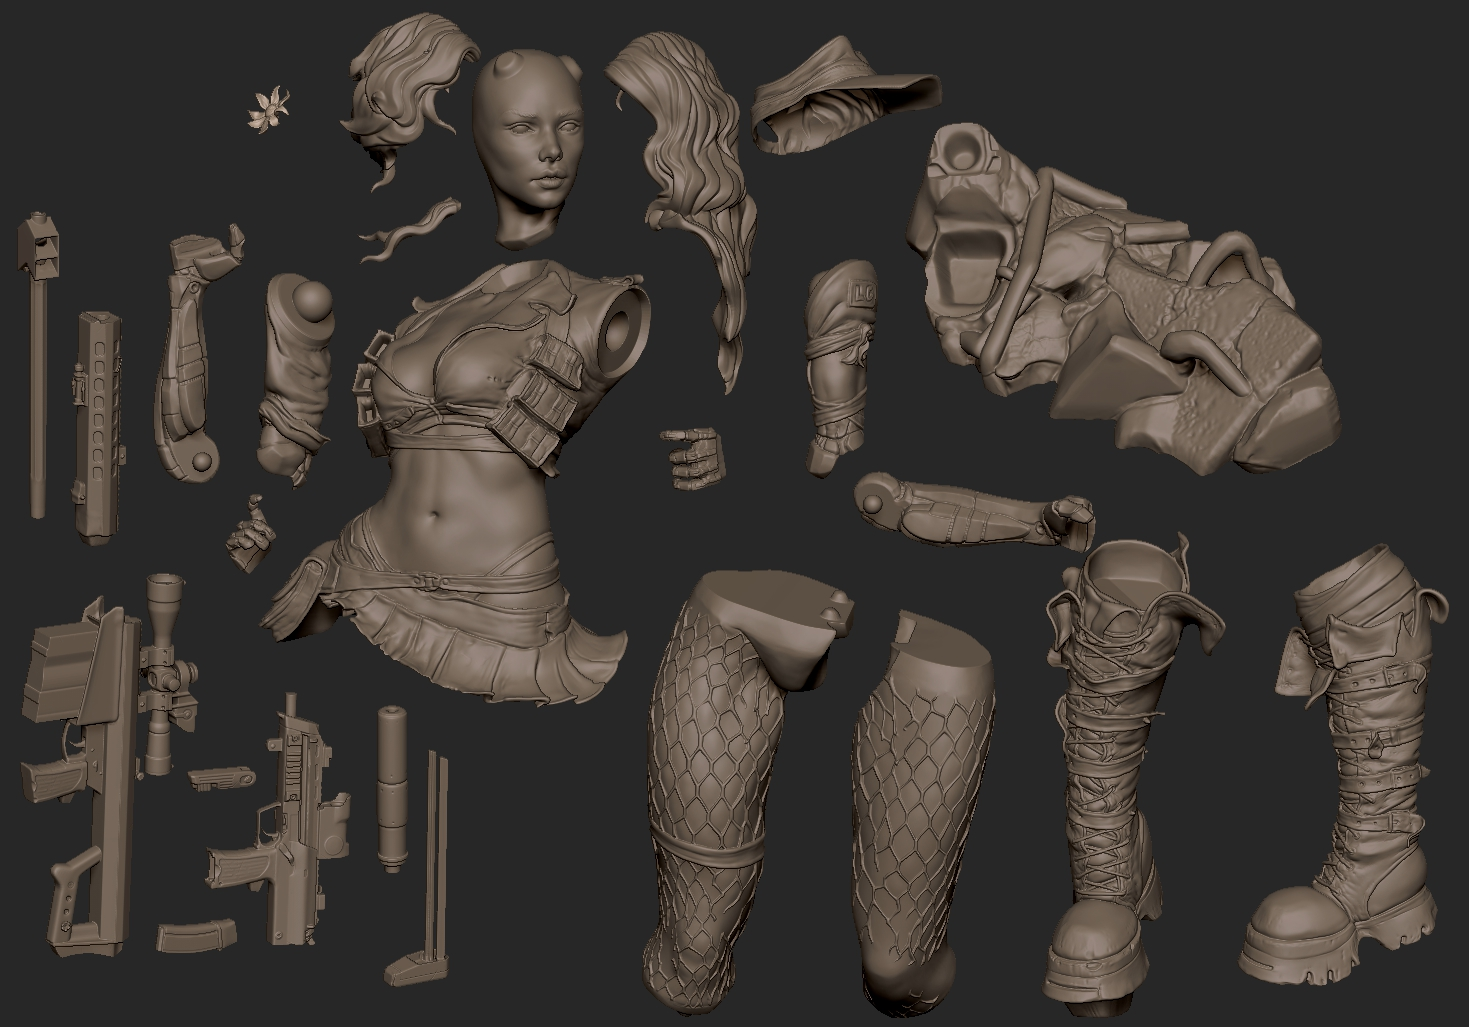 2019.09.21  Cyborg Girl collectible for 3d printing available on my patreon.com/BorisArt or gumroad